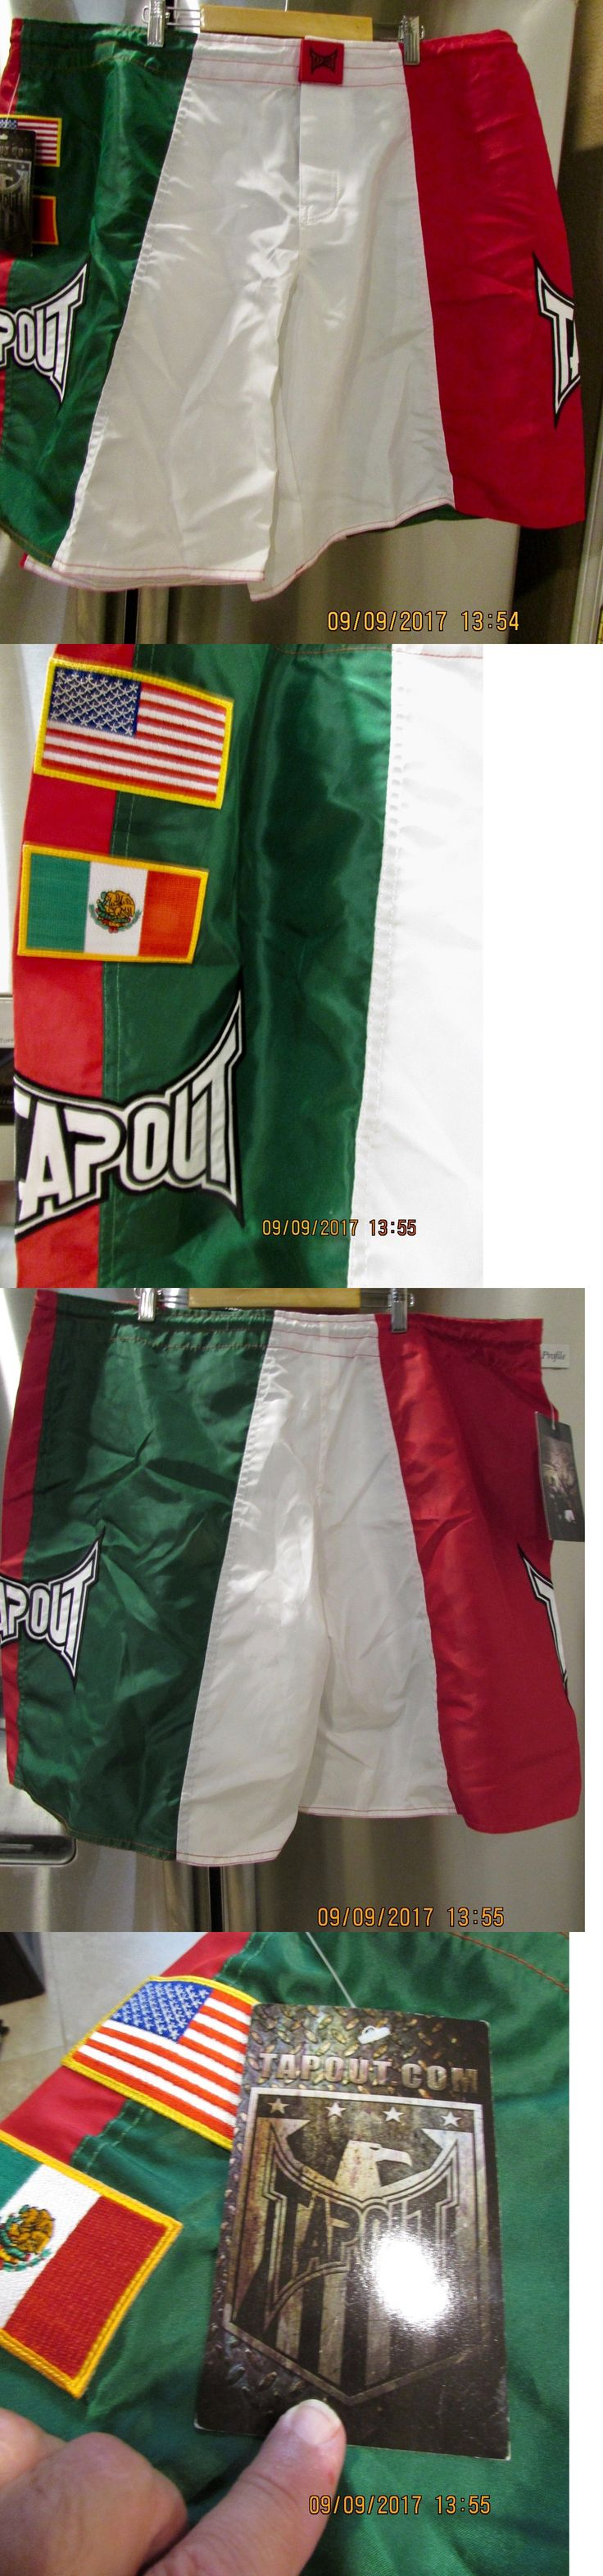 Shorts 73982: Tap Out ~ Red White Green ~ Mma Shorts ~ Mexican American Flags ~ Sewn ~ 42 -> BUY IT NOW ONLY: $37.8 on eBay!